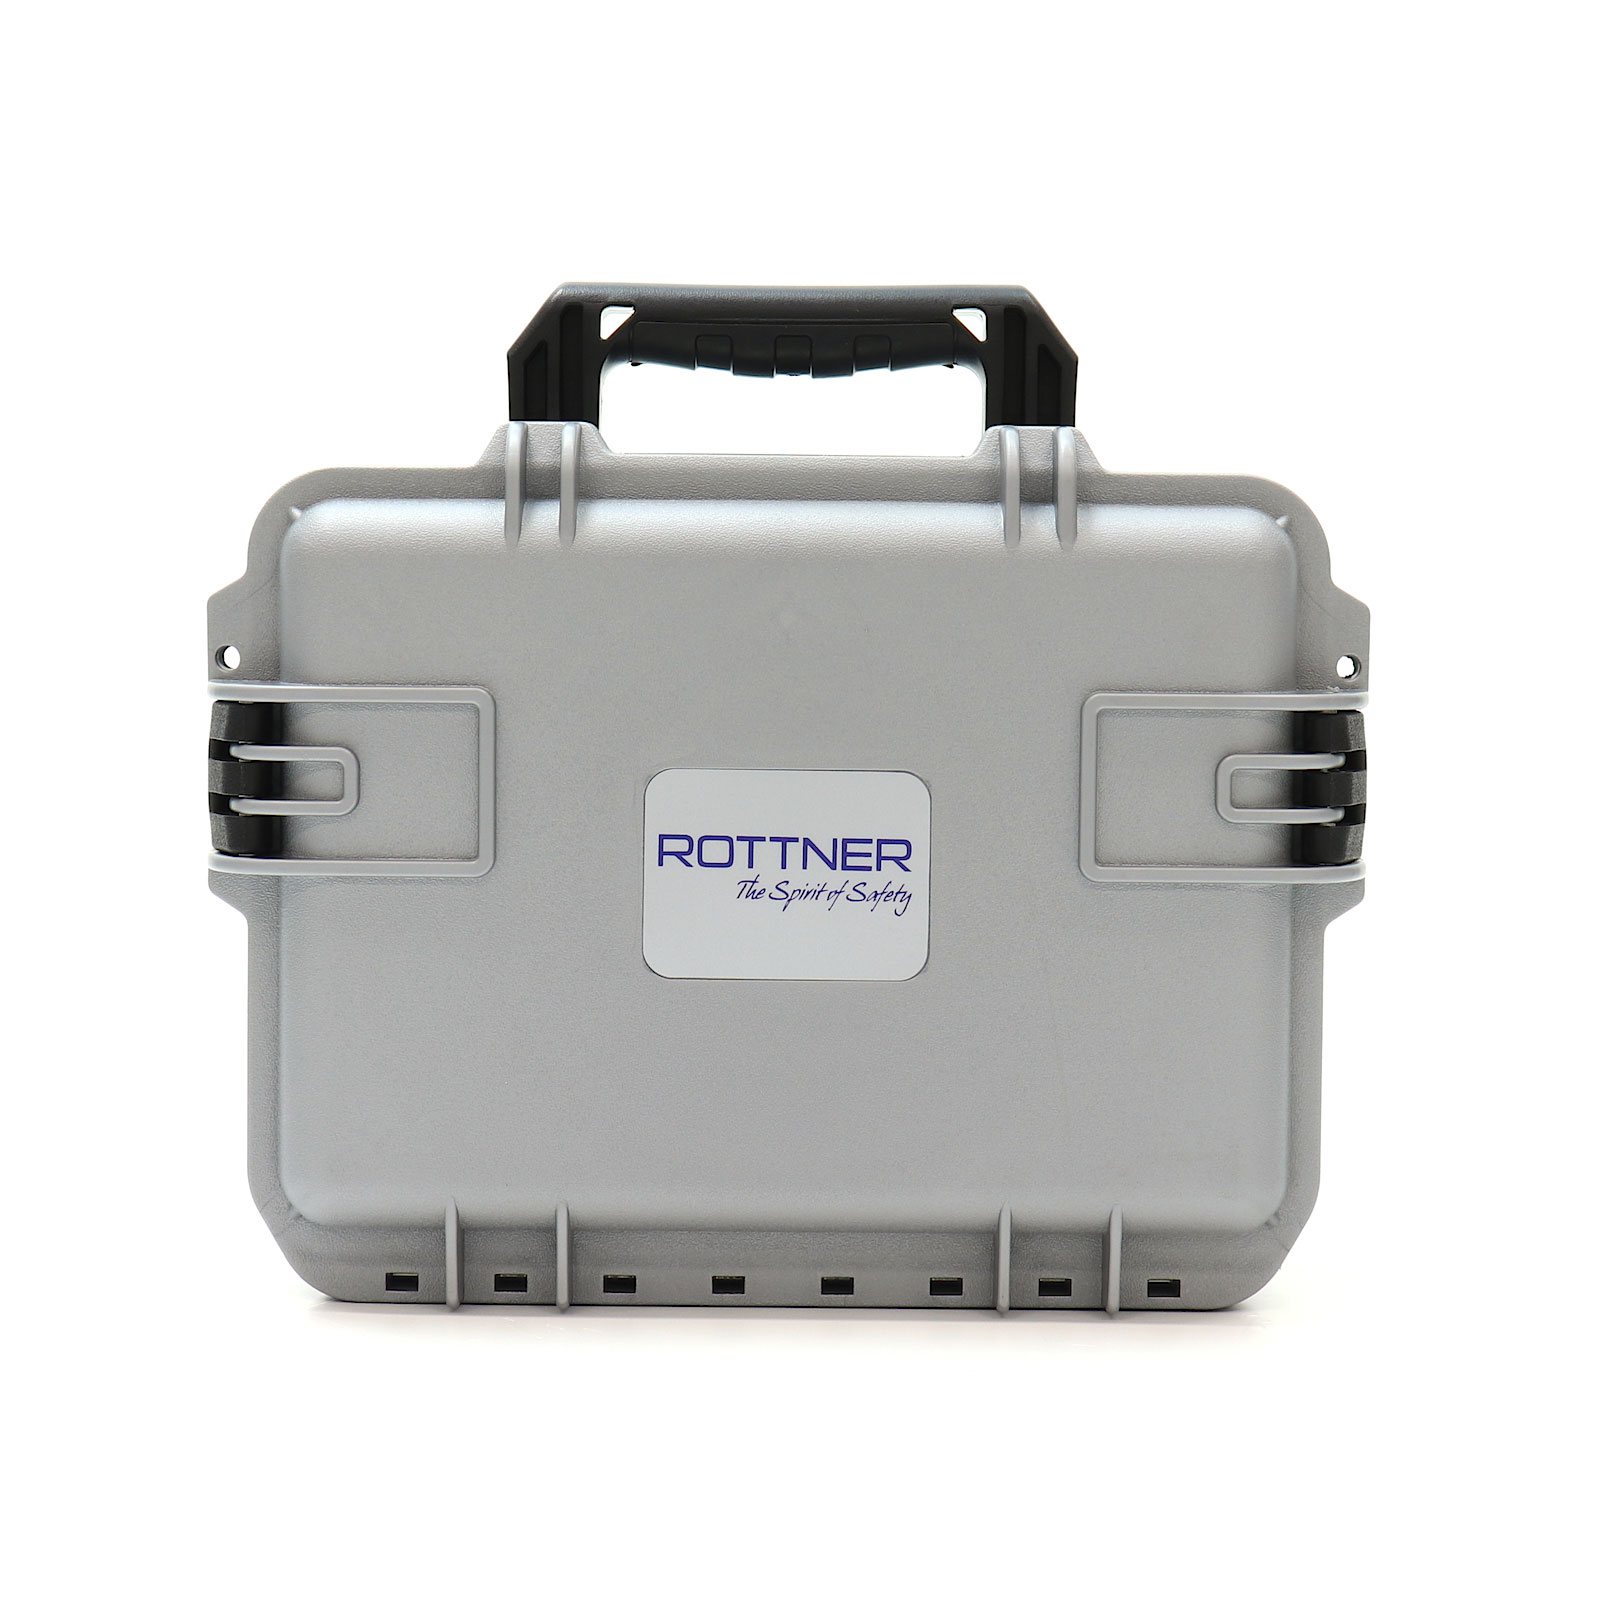 Rottner Waffentransportbox Gun Case mobile